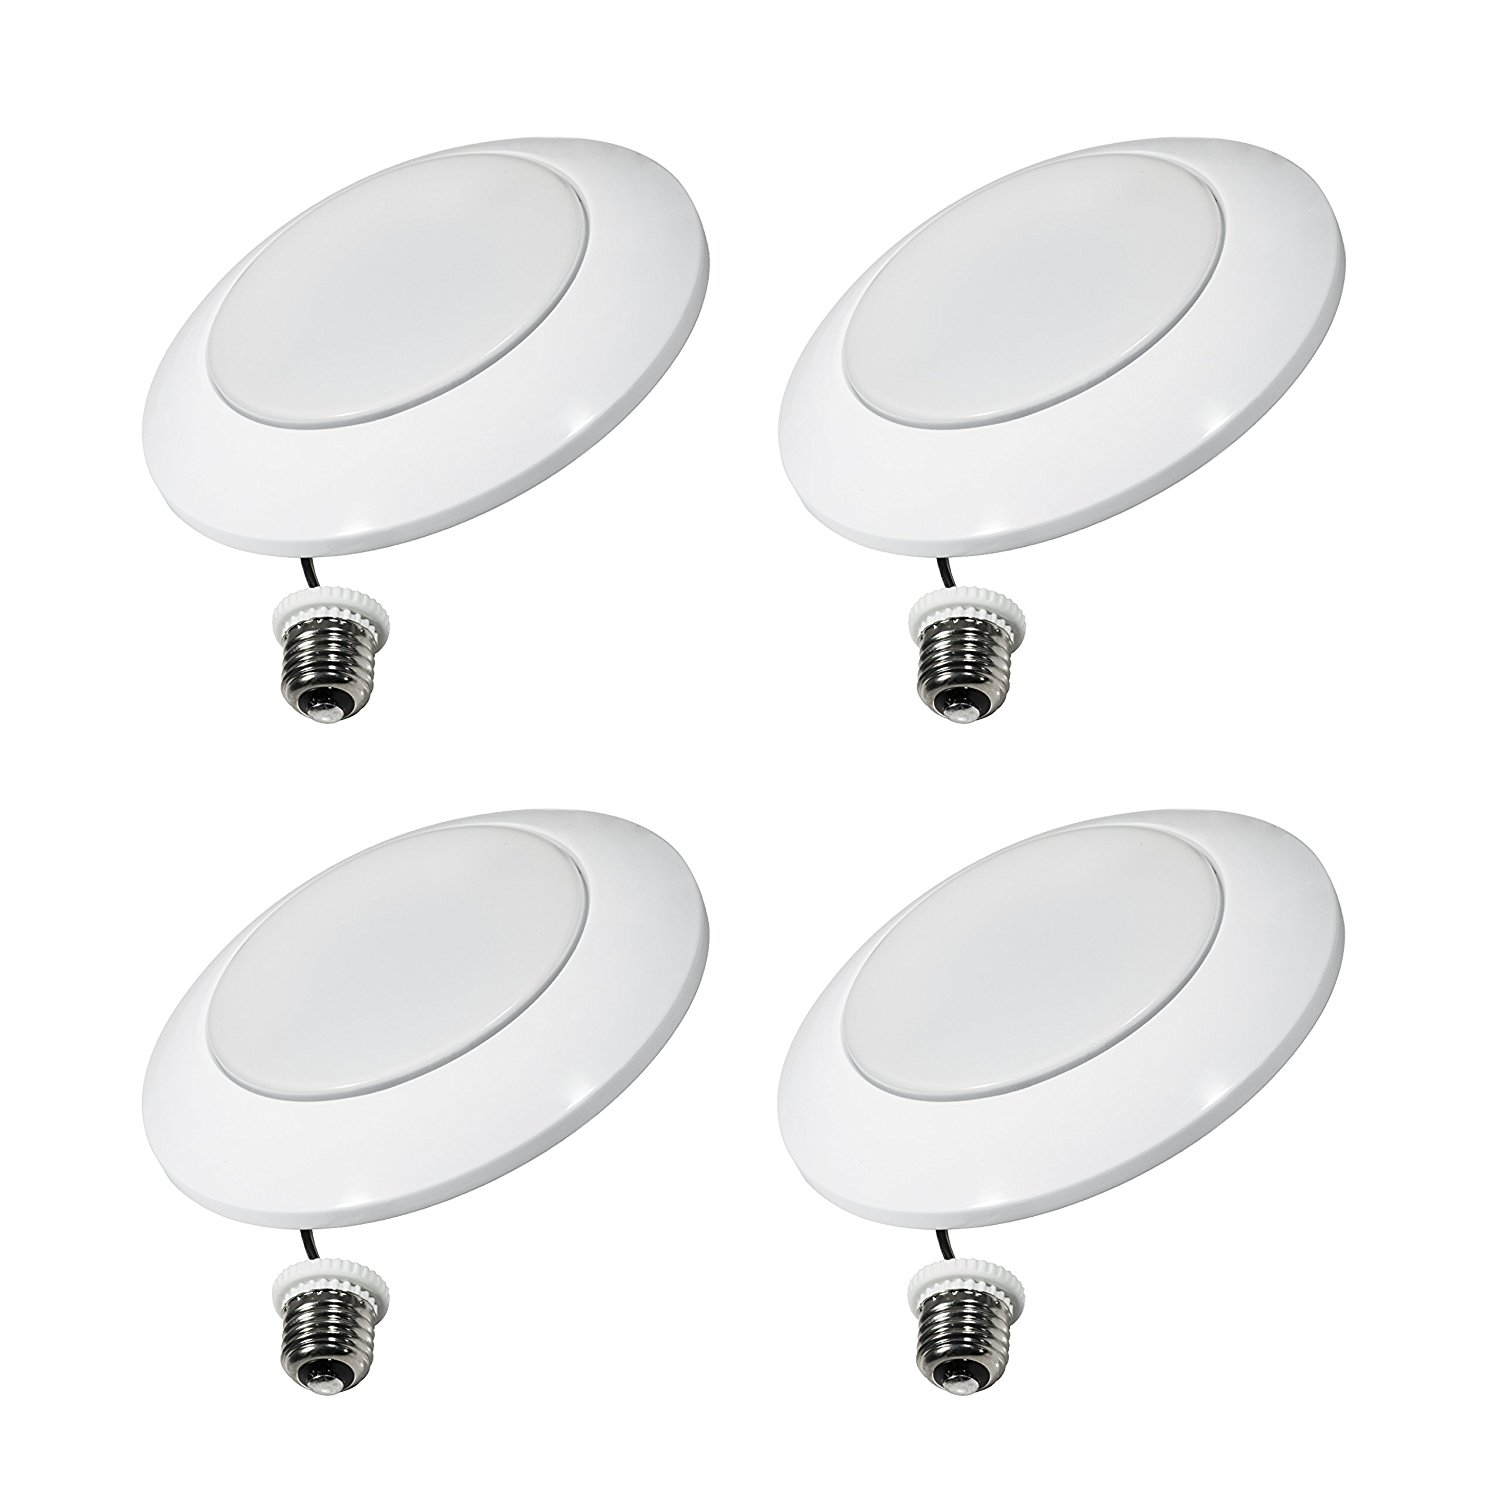 Thinklux LED Recessed Downlight Fixture Upgrade Kit, 13W (85 Watt Equivalent), 3000K (Warm White), Dimmable, Ultra-Thin Design, Energy Star (Pack of 4)